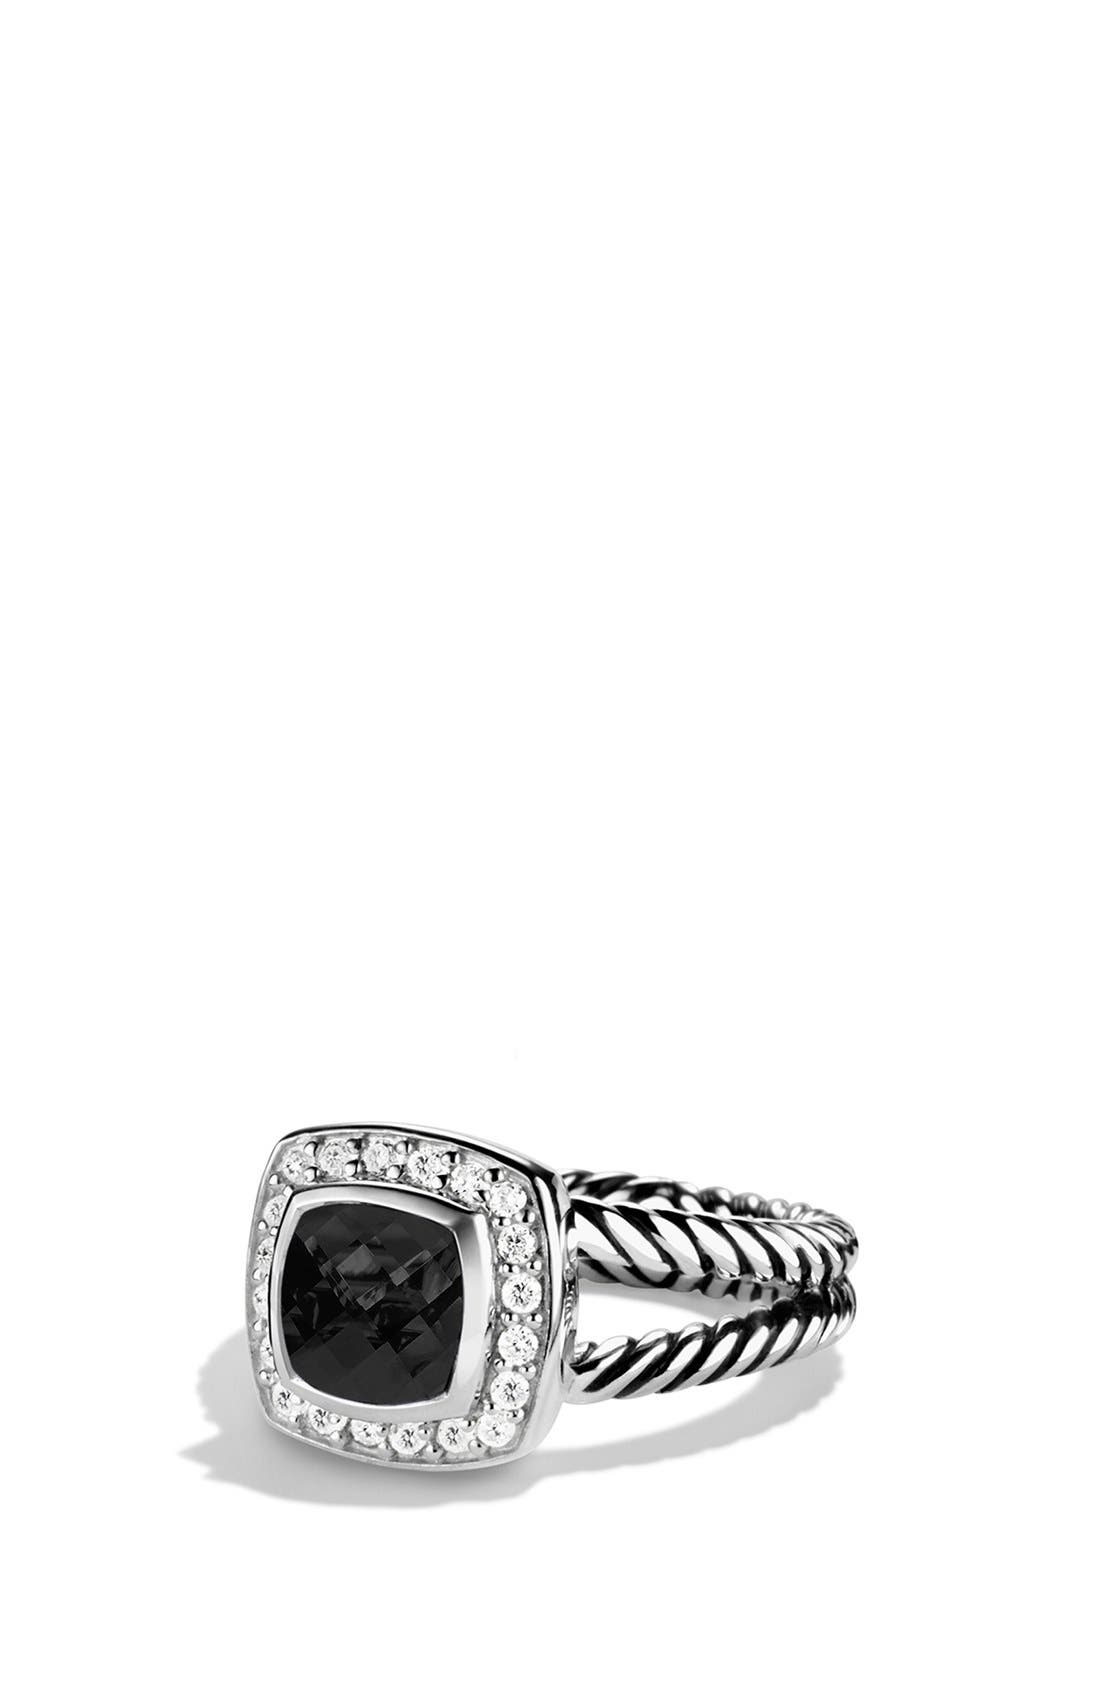 'Albion' Petite Ring with Semiprecious Stone & Diamonds,                             Main thumbnail 1, color,                             BLACK ONYX